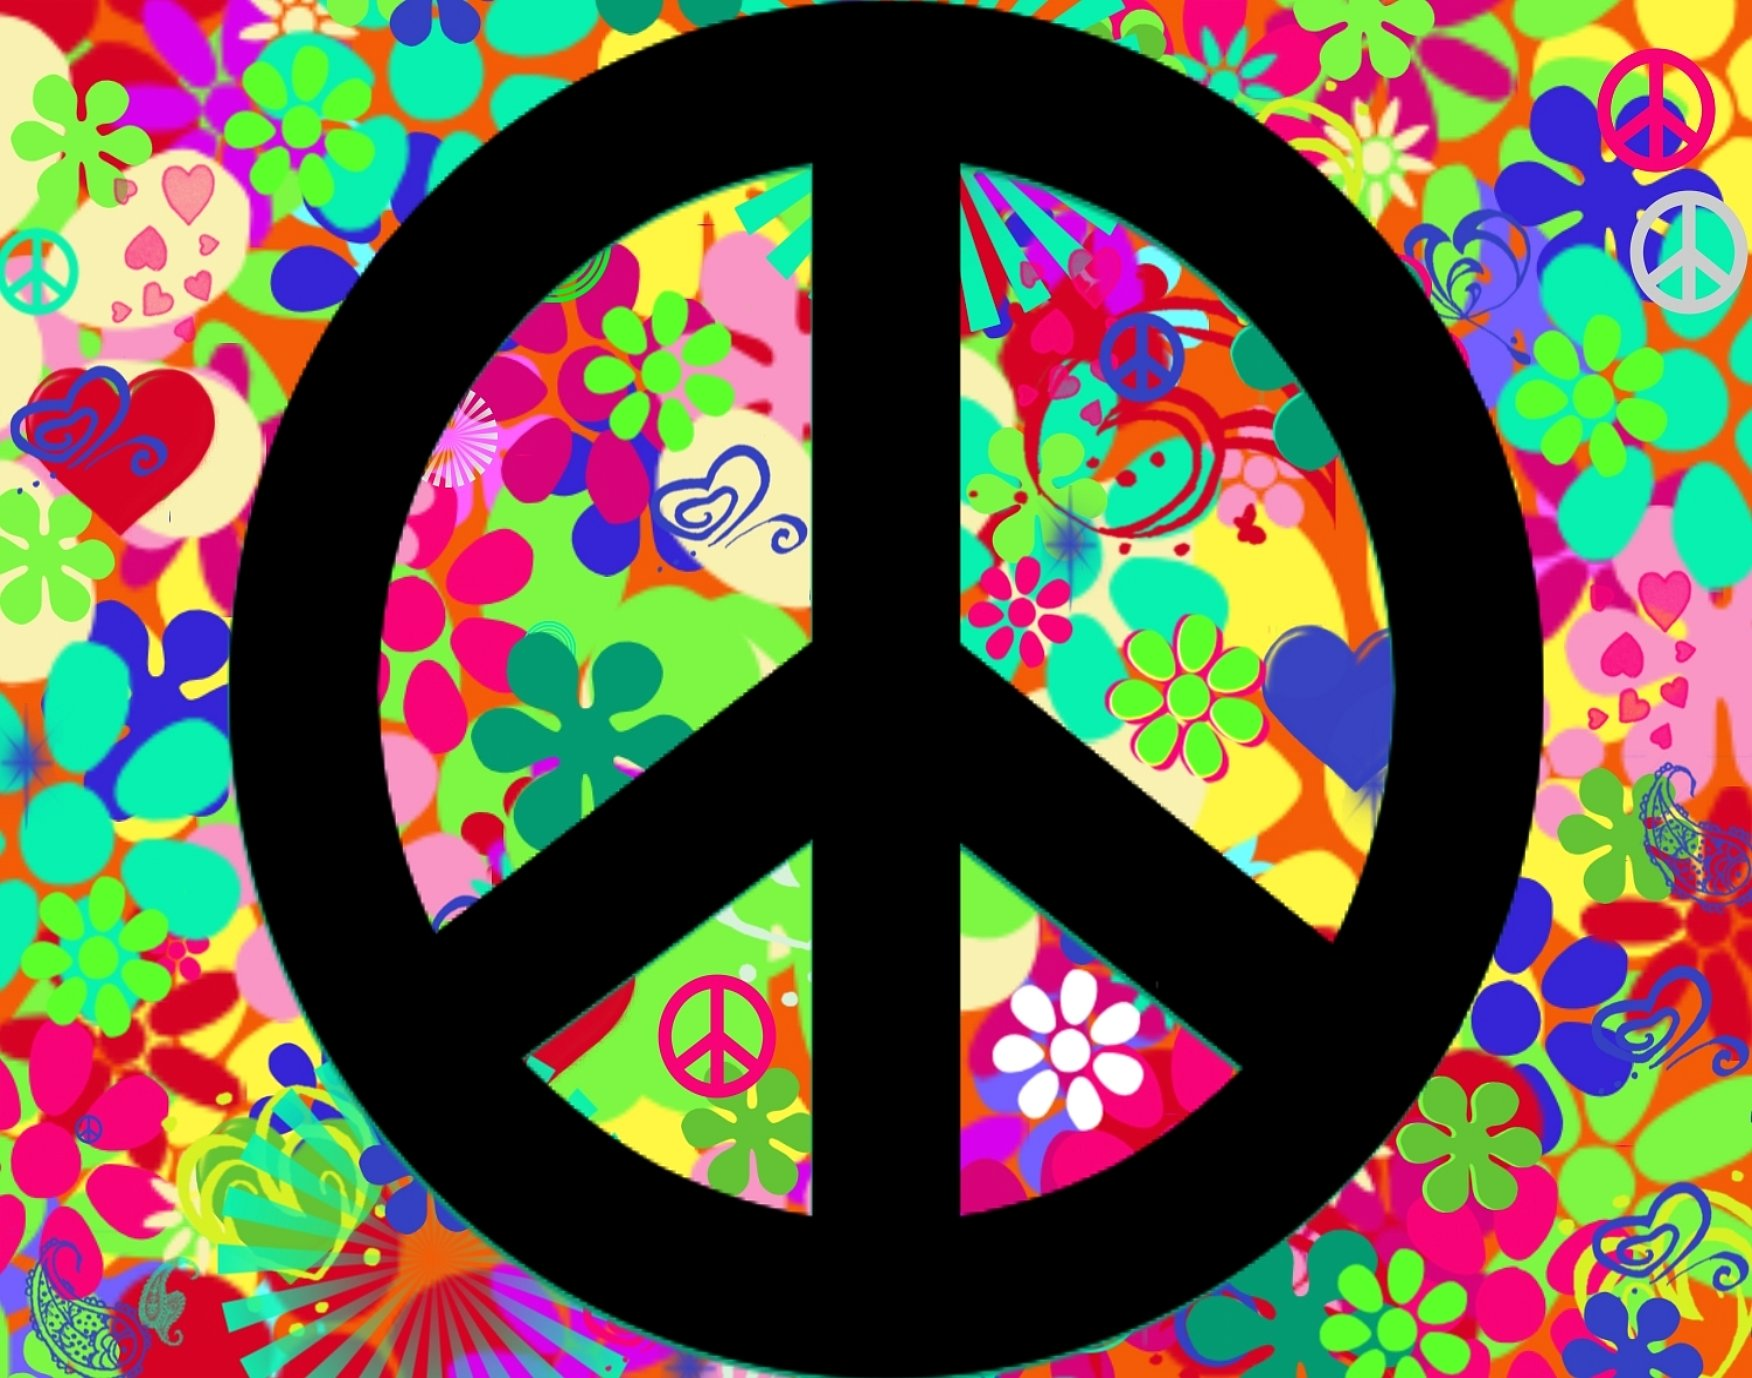 Cute Peace Signs Wallpaper Peace sign backgrounds cake 1752x1378